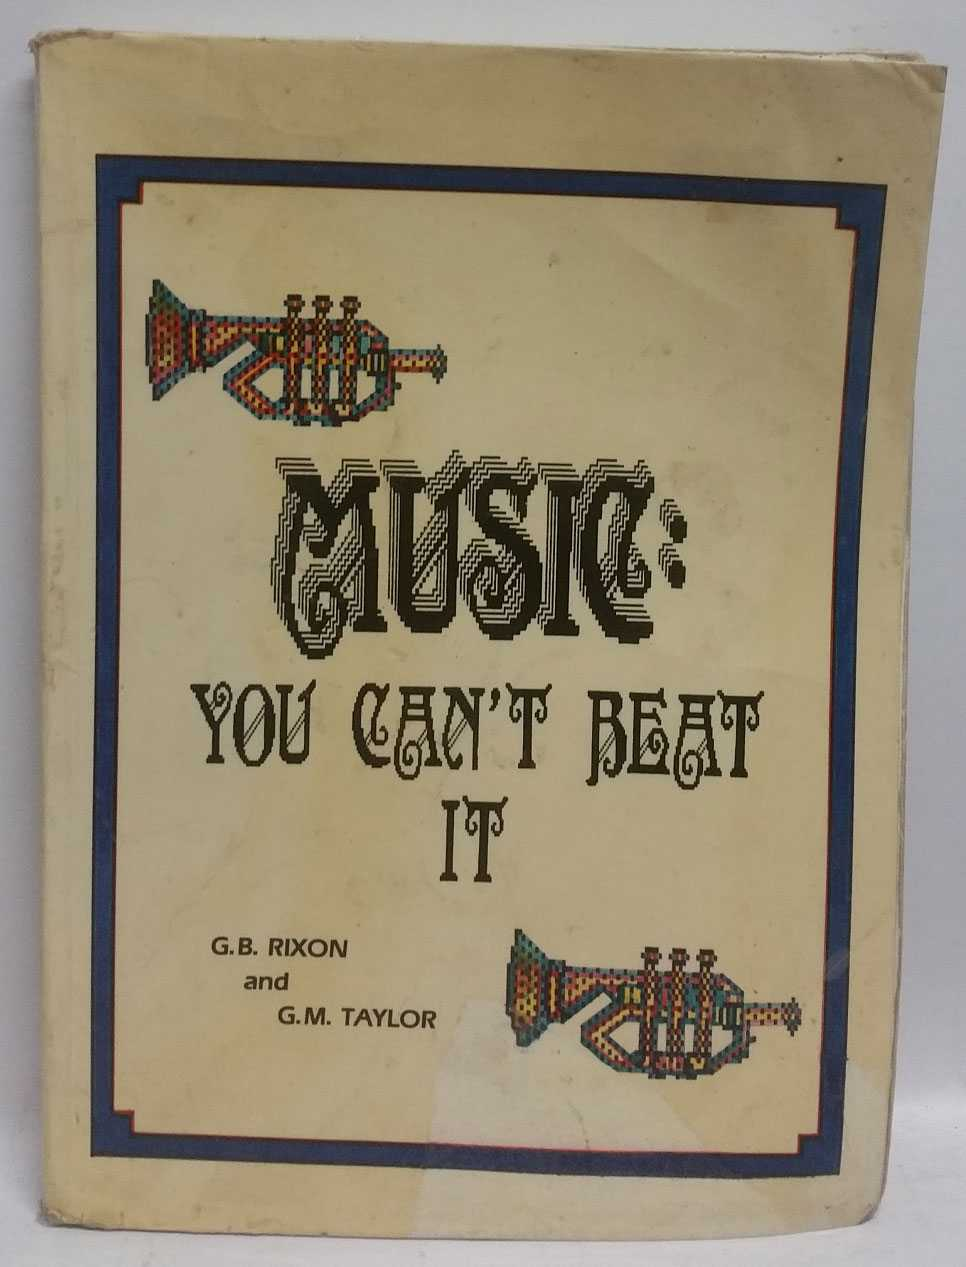 Music: You Can't Beat It, G. B. Rixon; G. M. Taylor